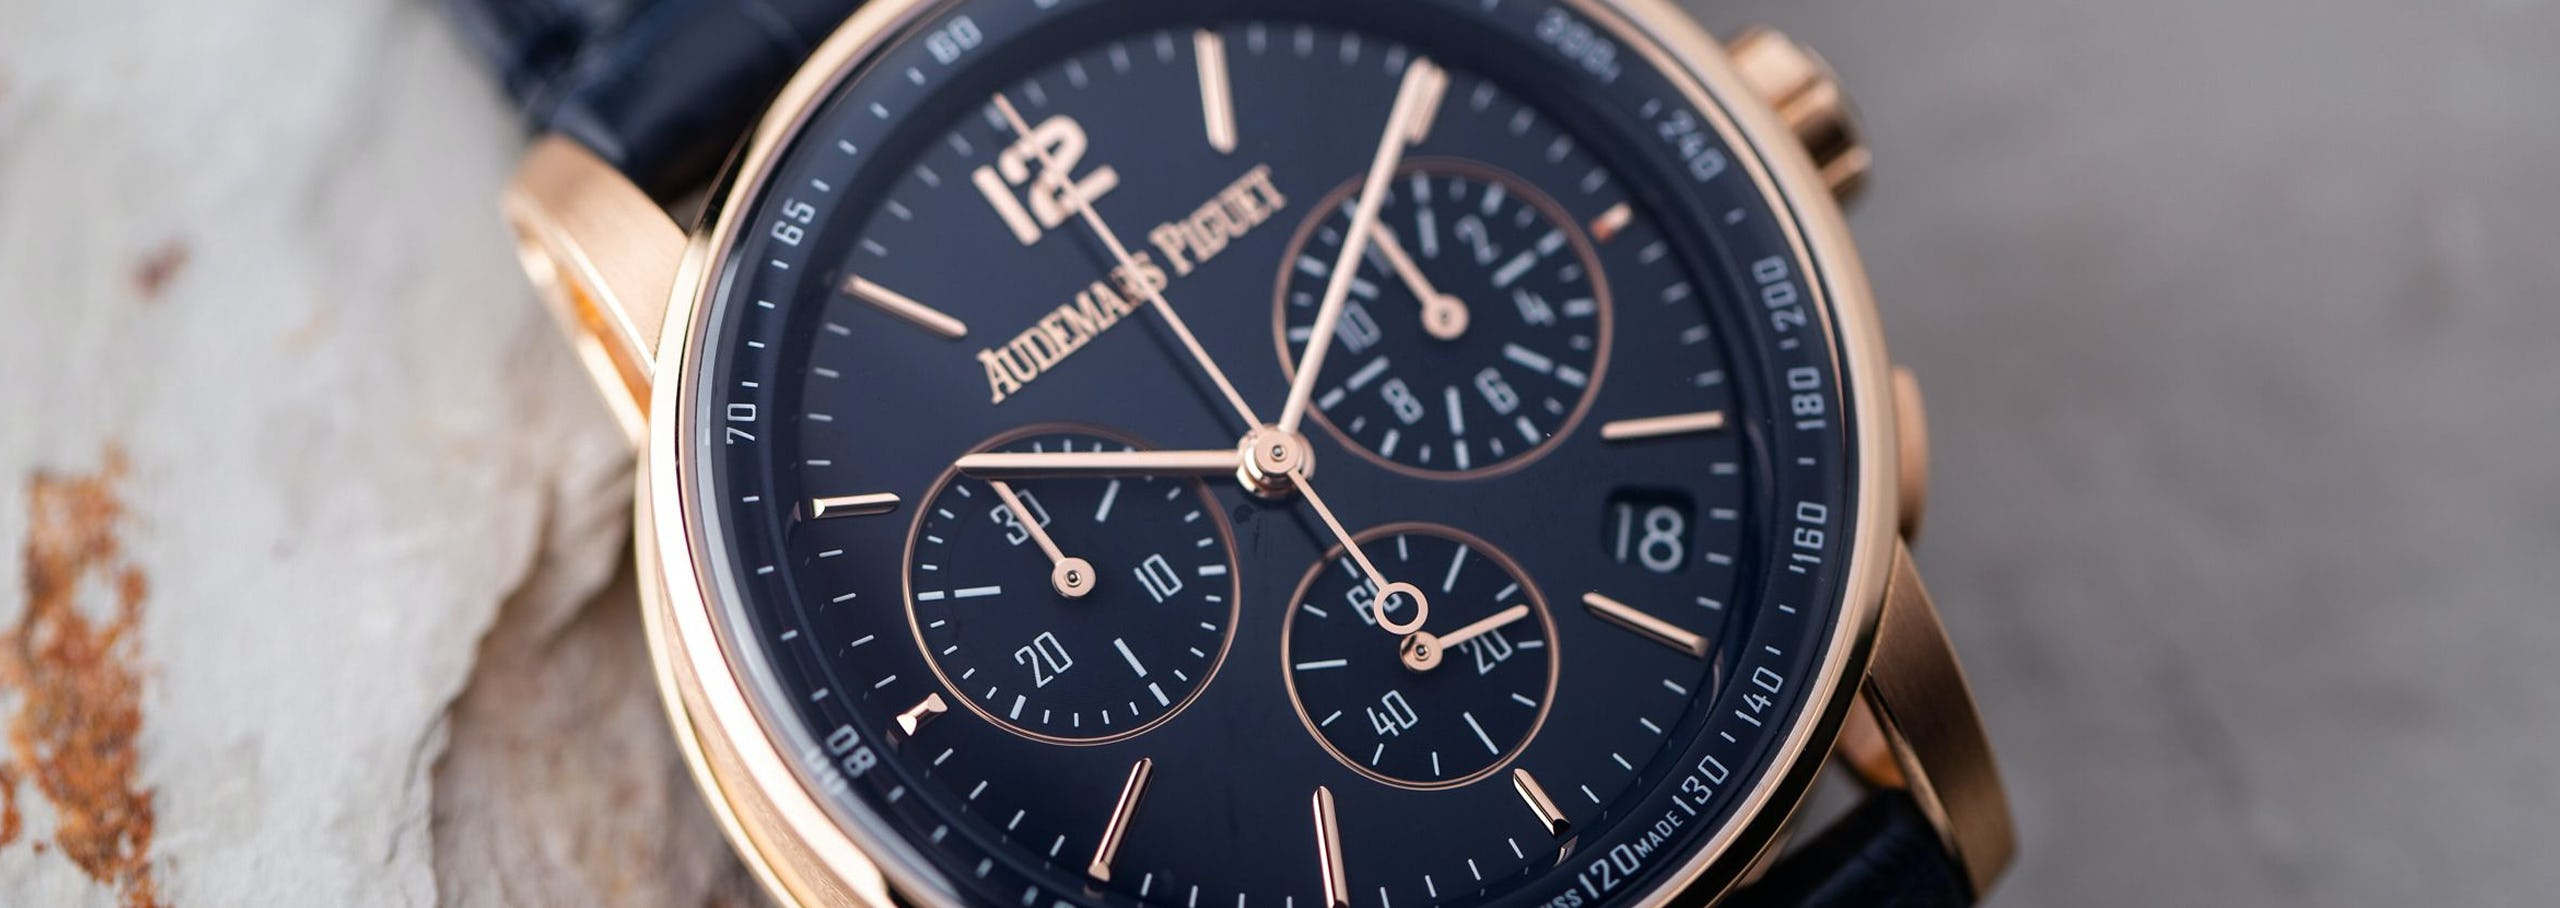 In Conversation: Audemars Piguet CEO François-Henry Bennahmias on the Era of COVID-19, Watch Consumers, and Reactions to the Code 11.59